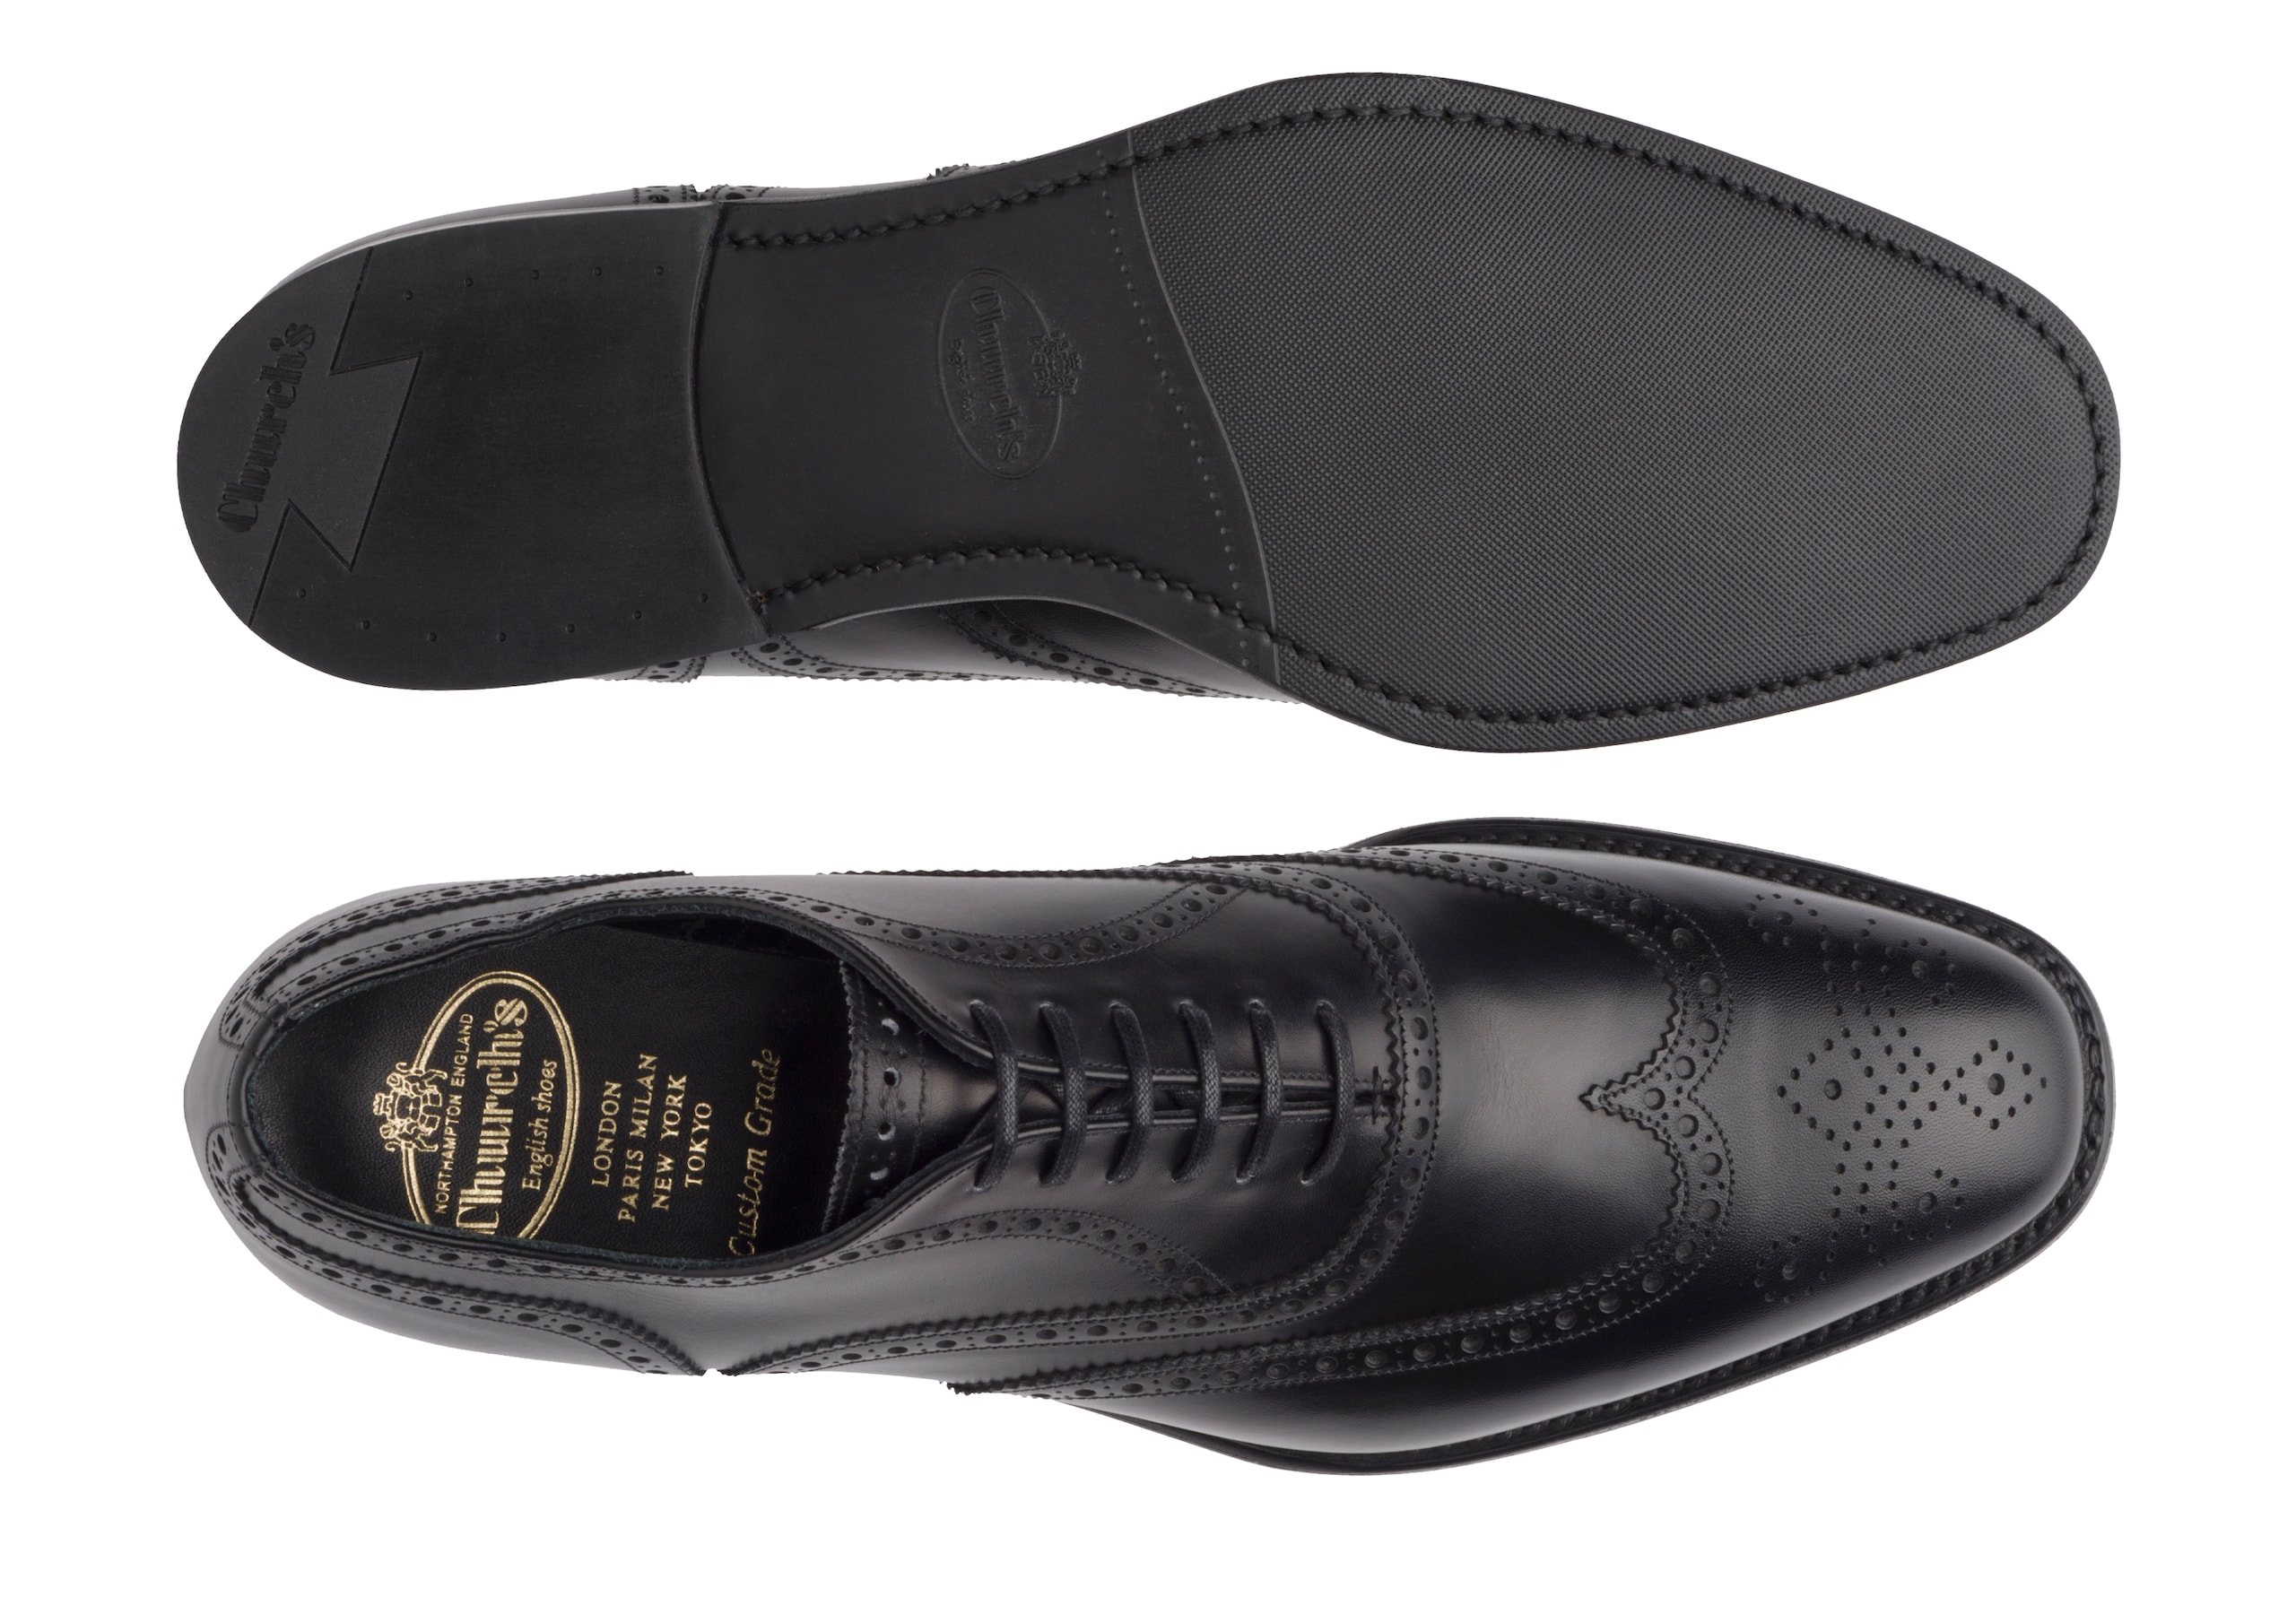 Parkstone Church's Oxford Brogue in Pelle di Vitello Nero